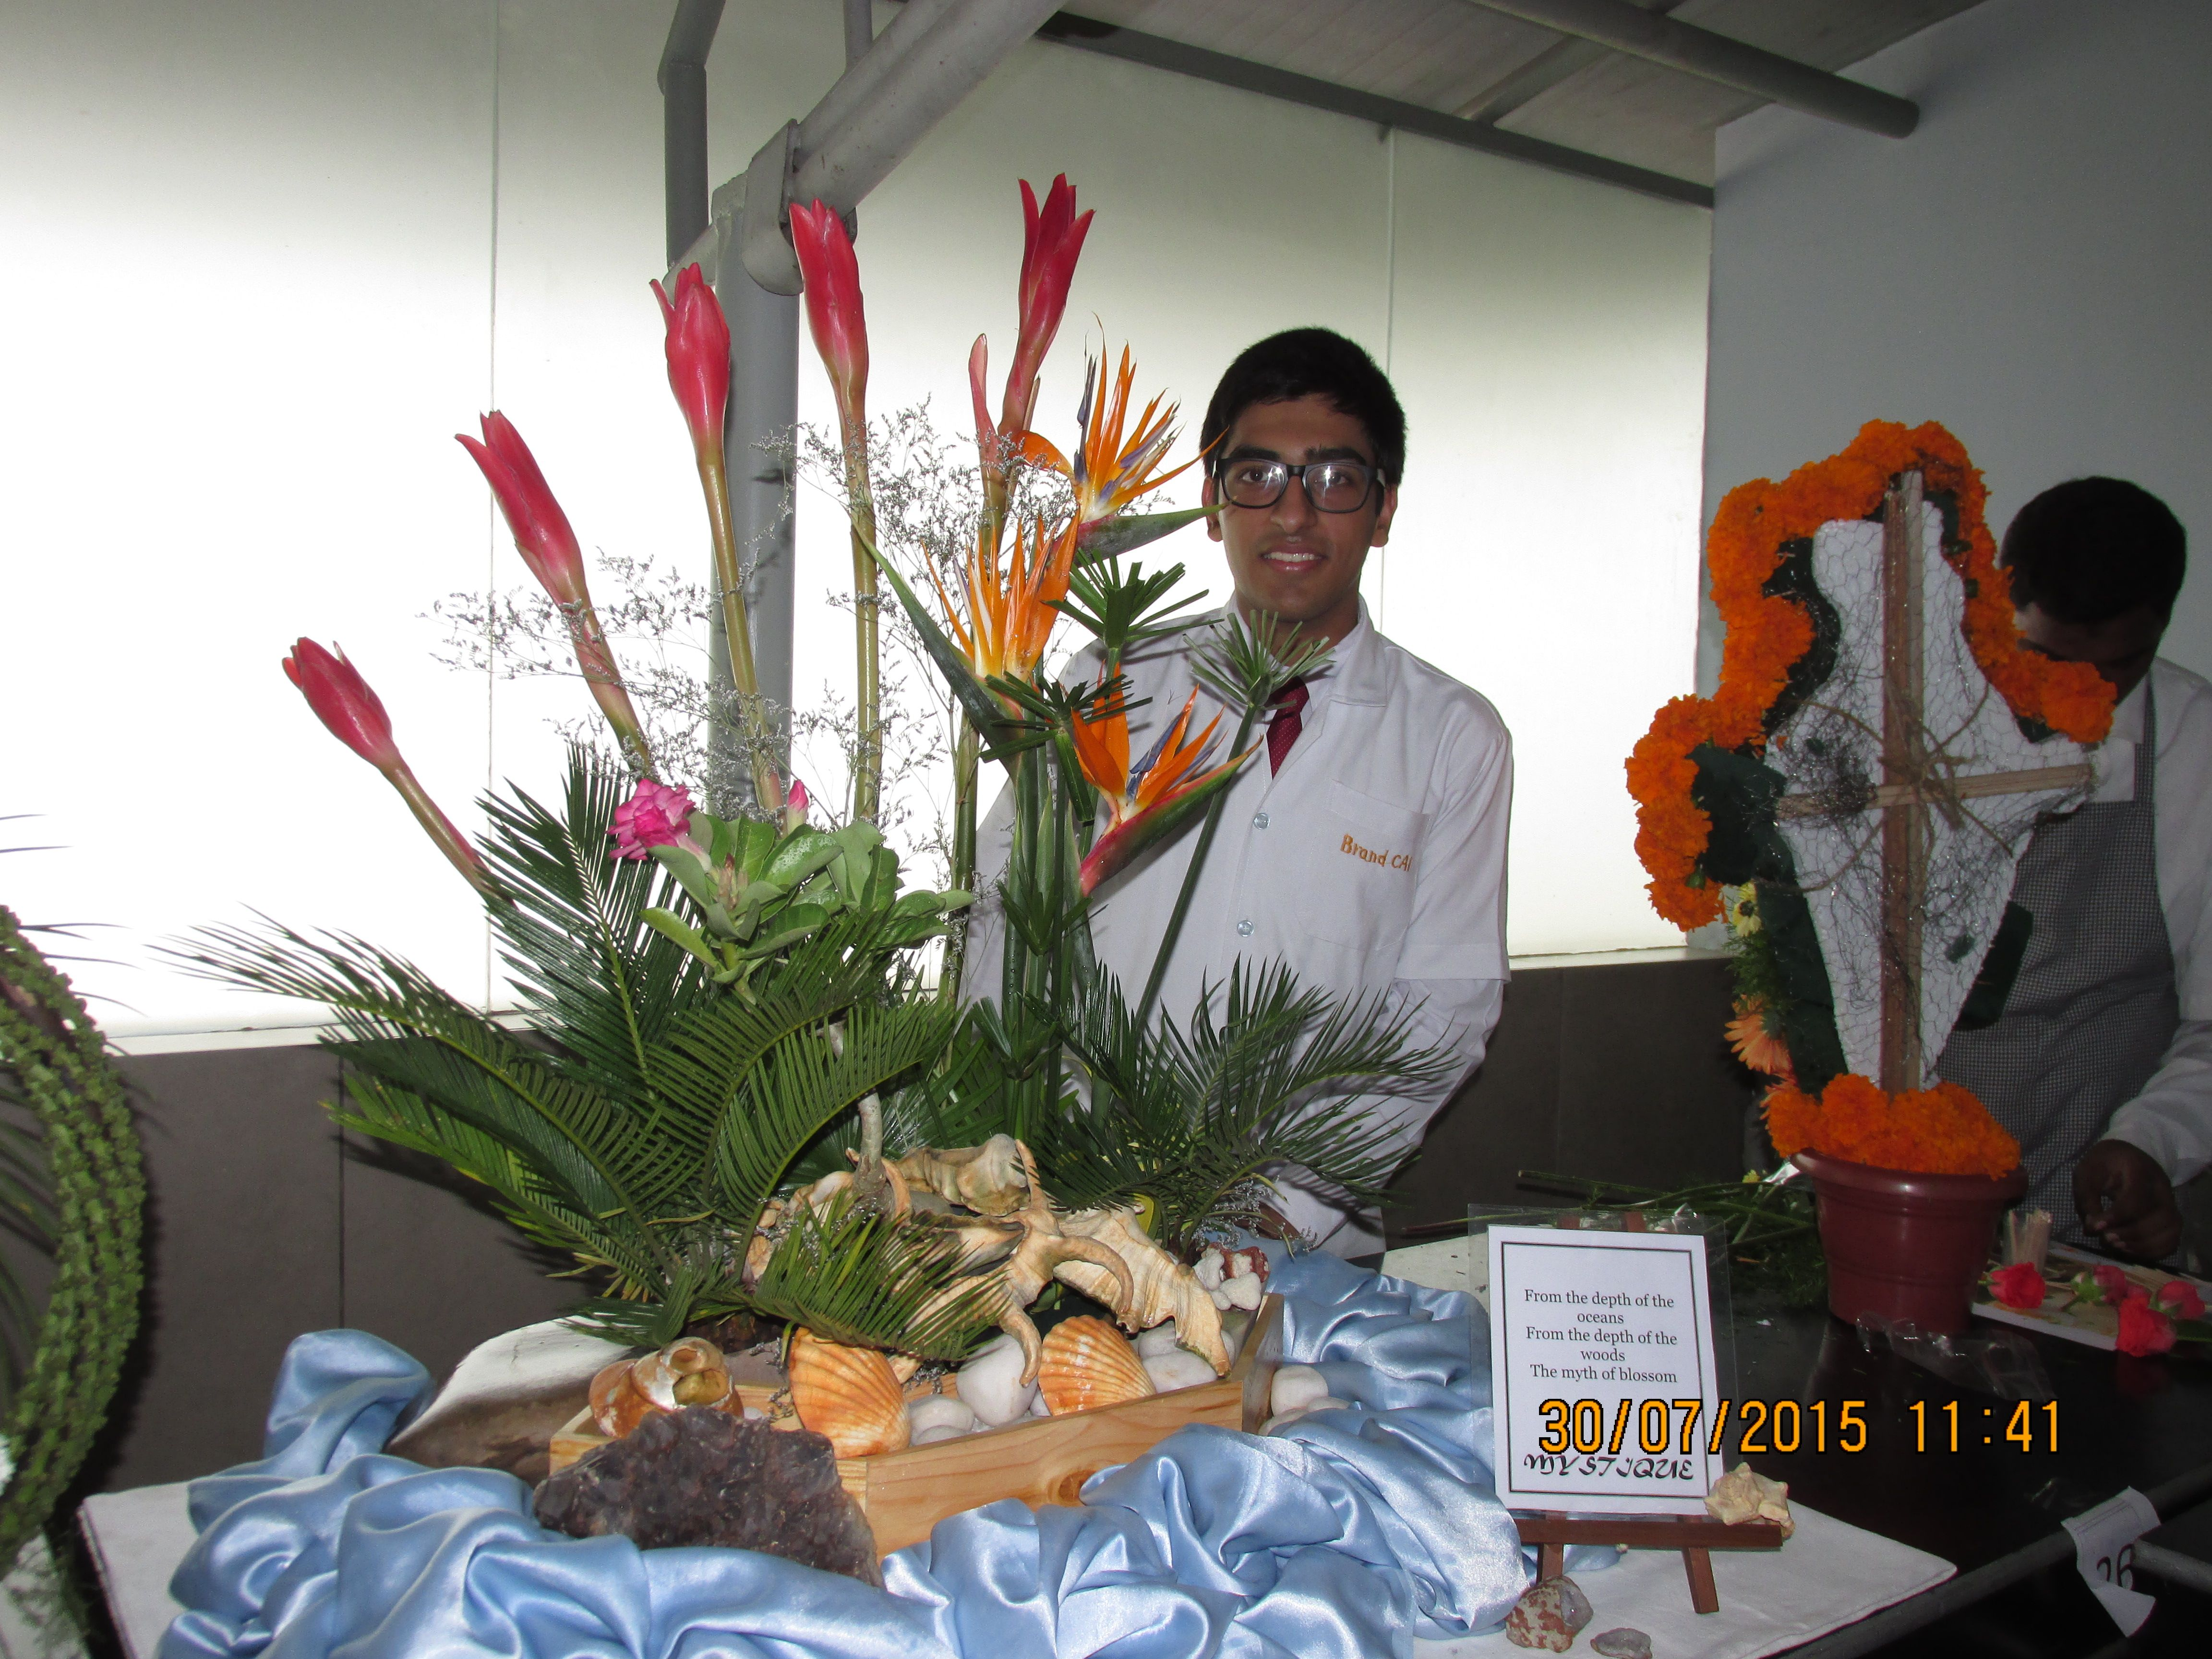 cai wins silver medal for flower arrangement competition at acp association of catering professionals held - Silver Hotel 2015